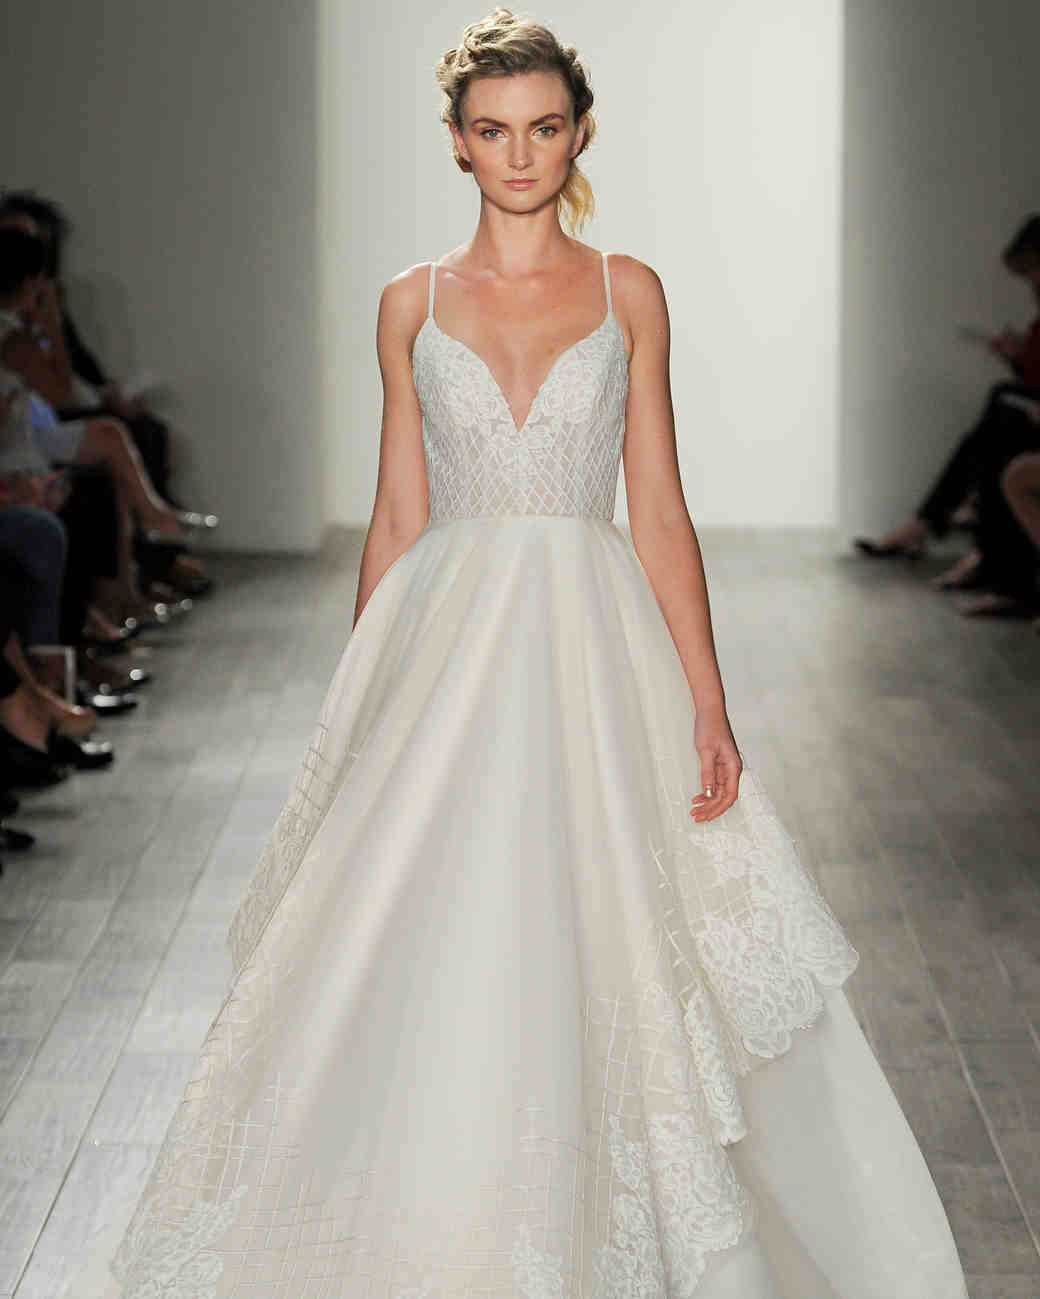 hayley paige wedding dresses fall hayley paige wedding dress Hayley Paige Fall Wedding Dress Collection Martha Stewart Weddings